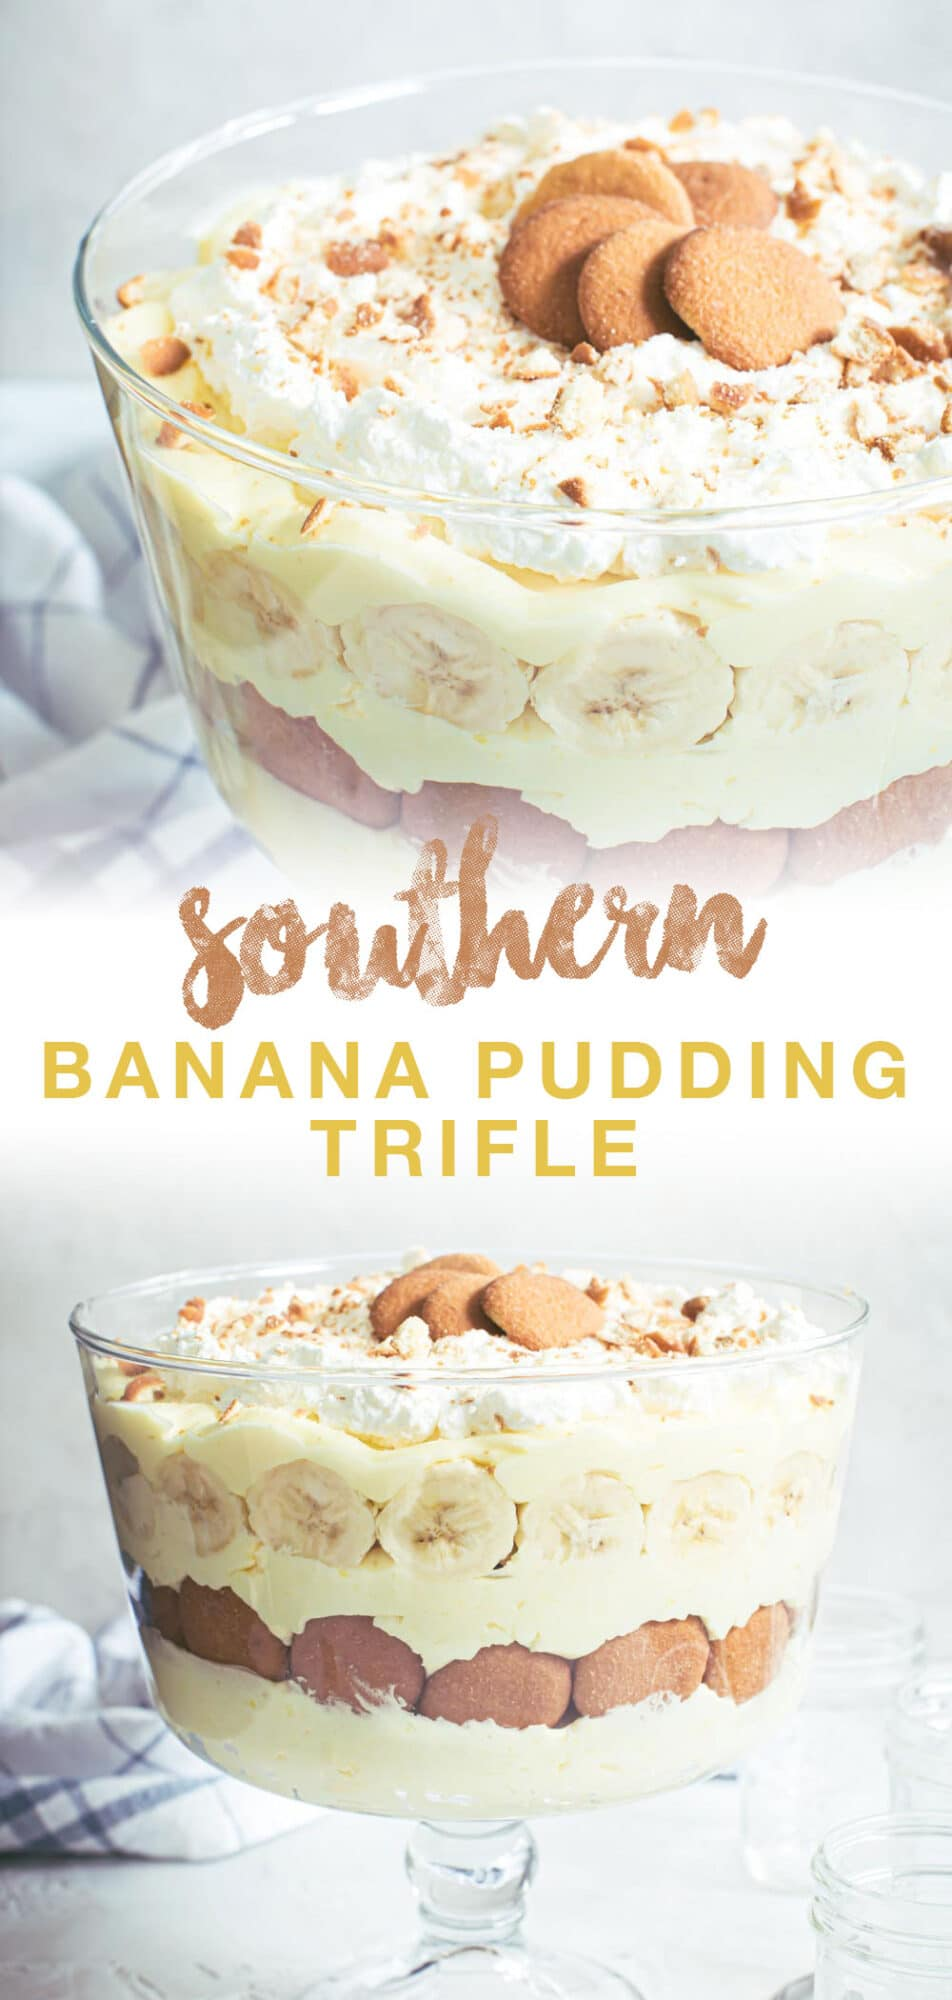 Banana pudding double image with brown and yellow title.